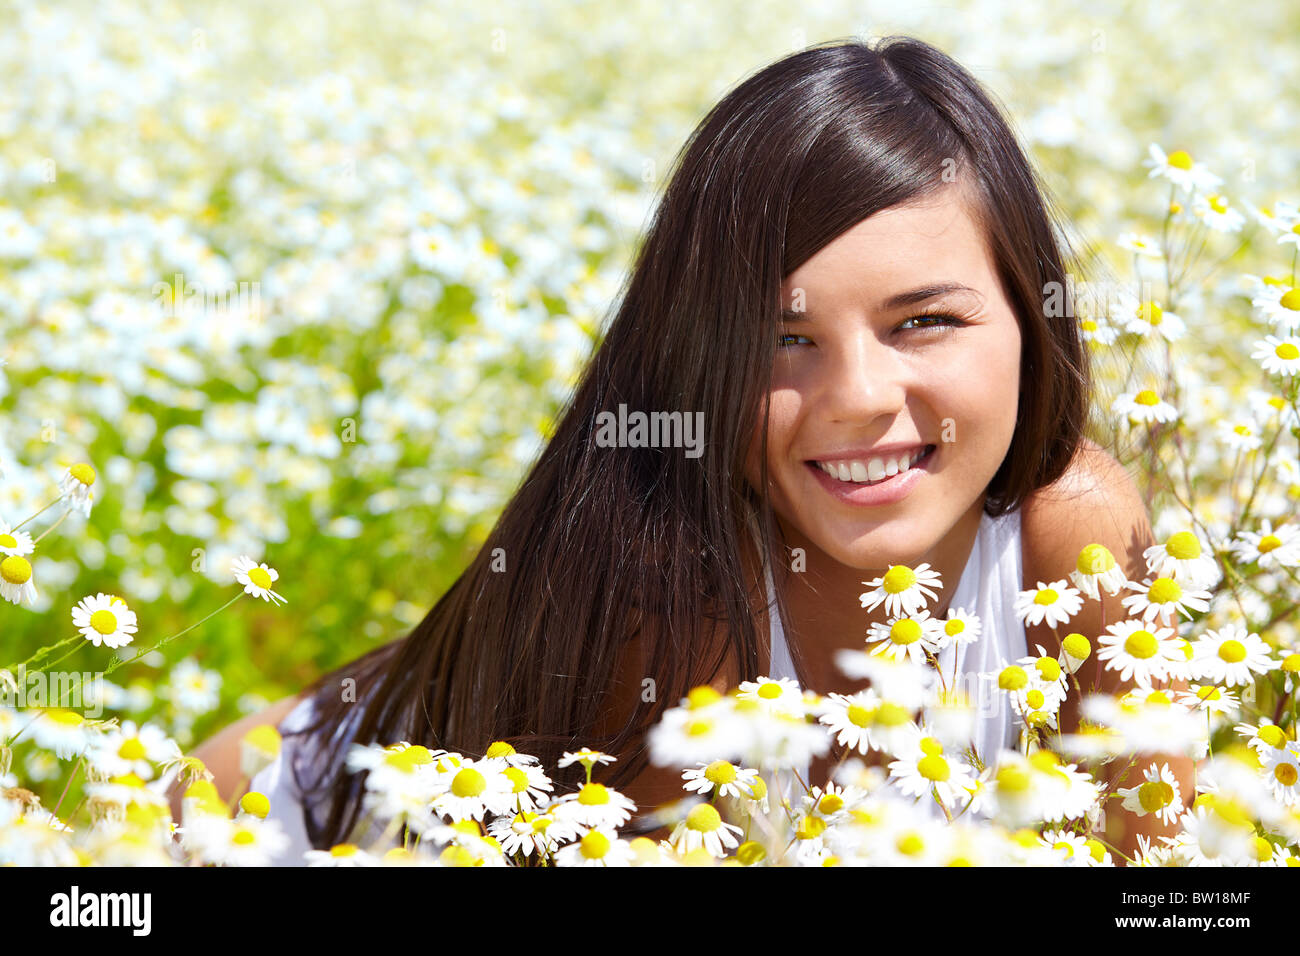 Image of happy female peeking out of chamomile glade and smiling at camera - Stock Image